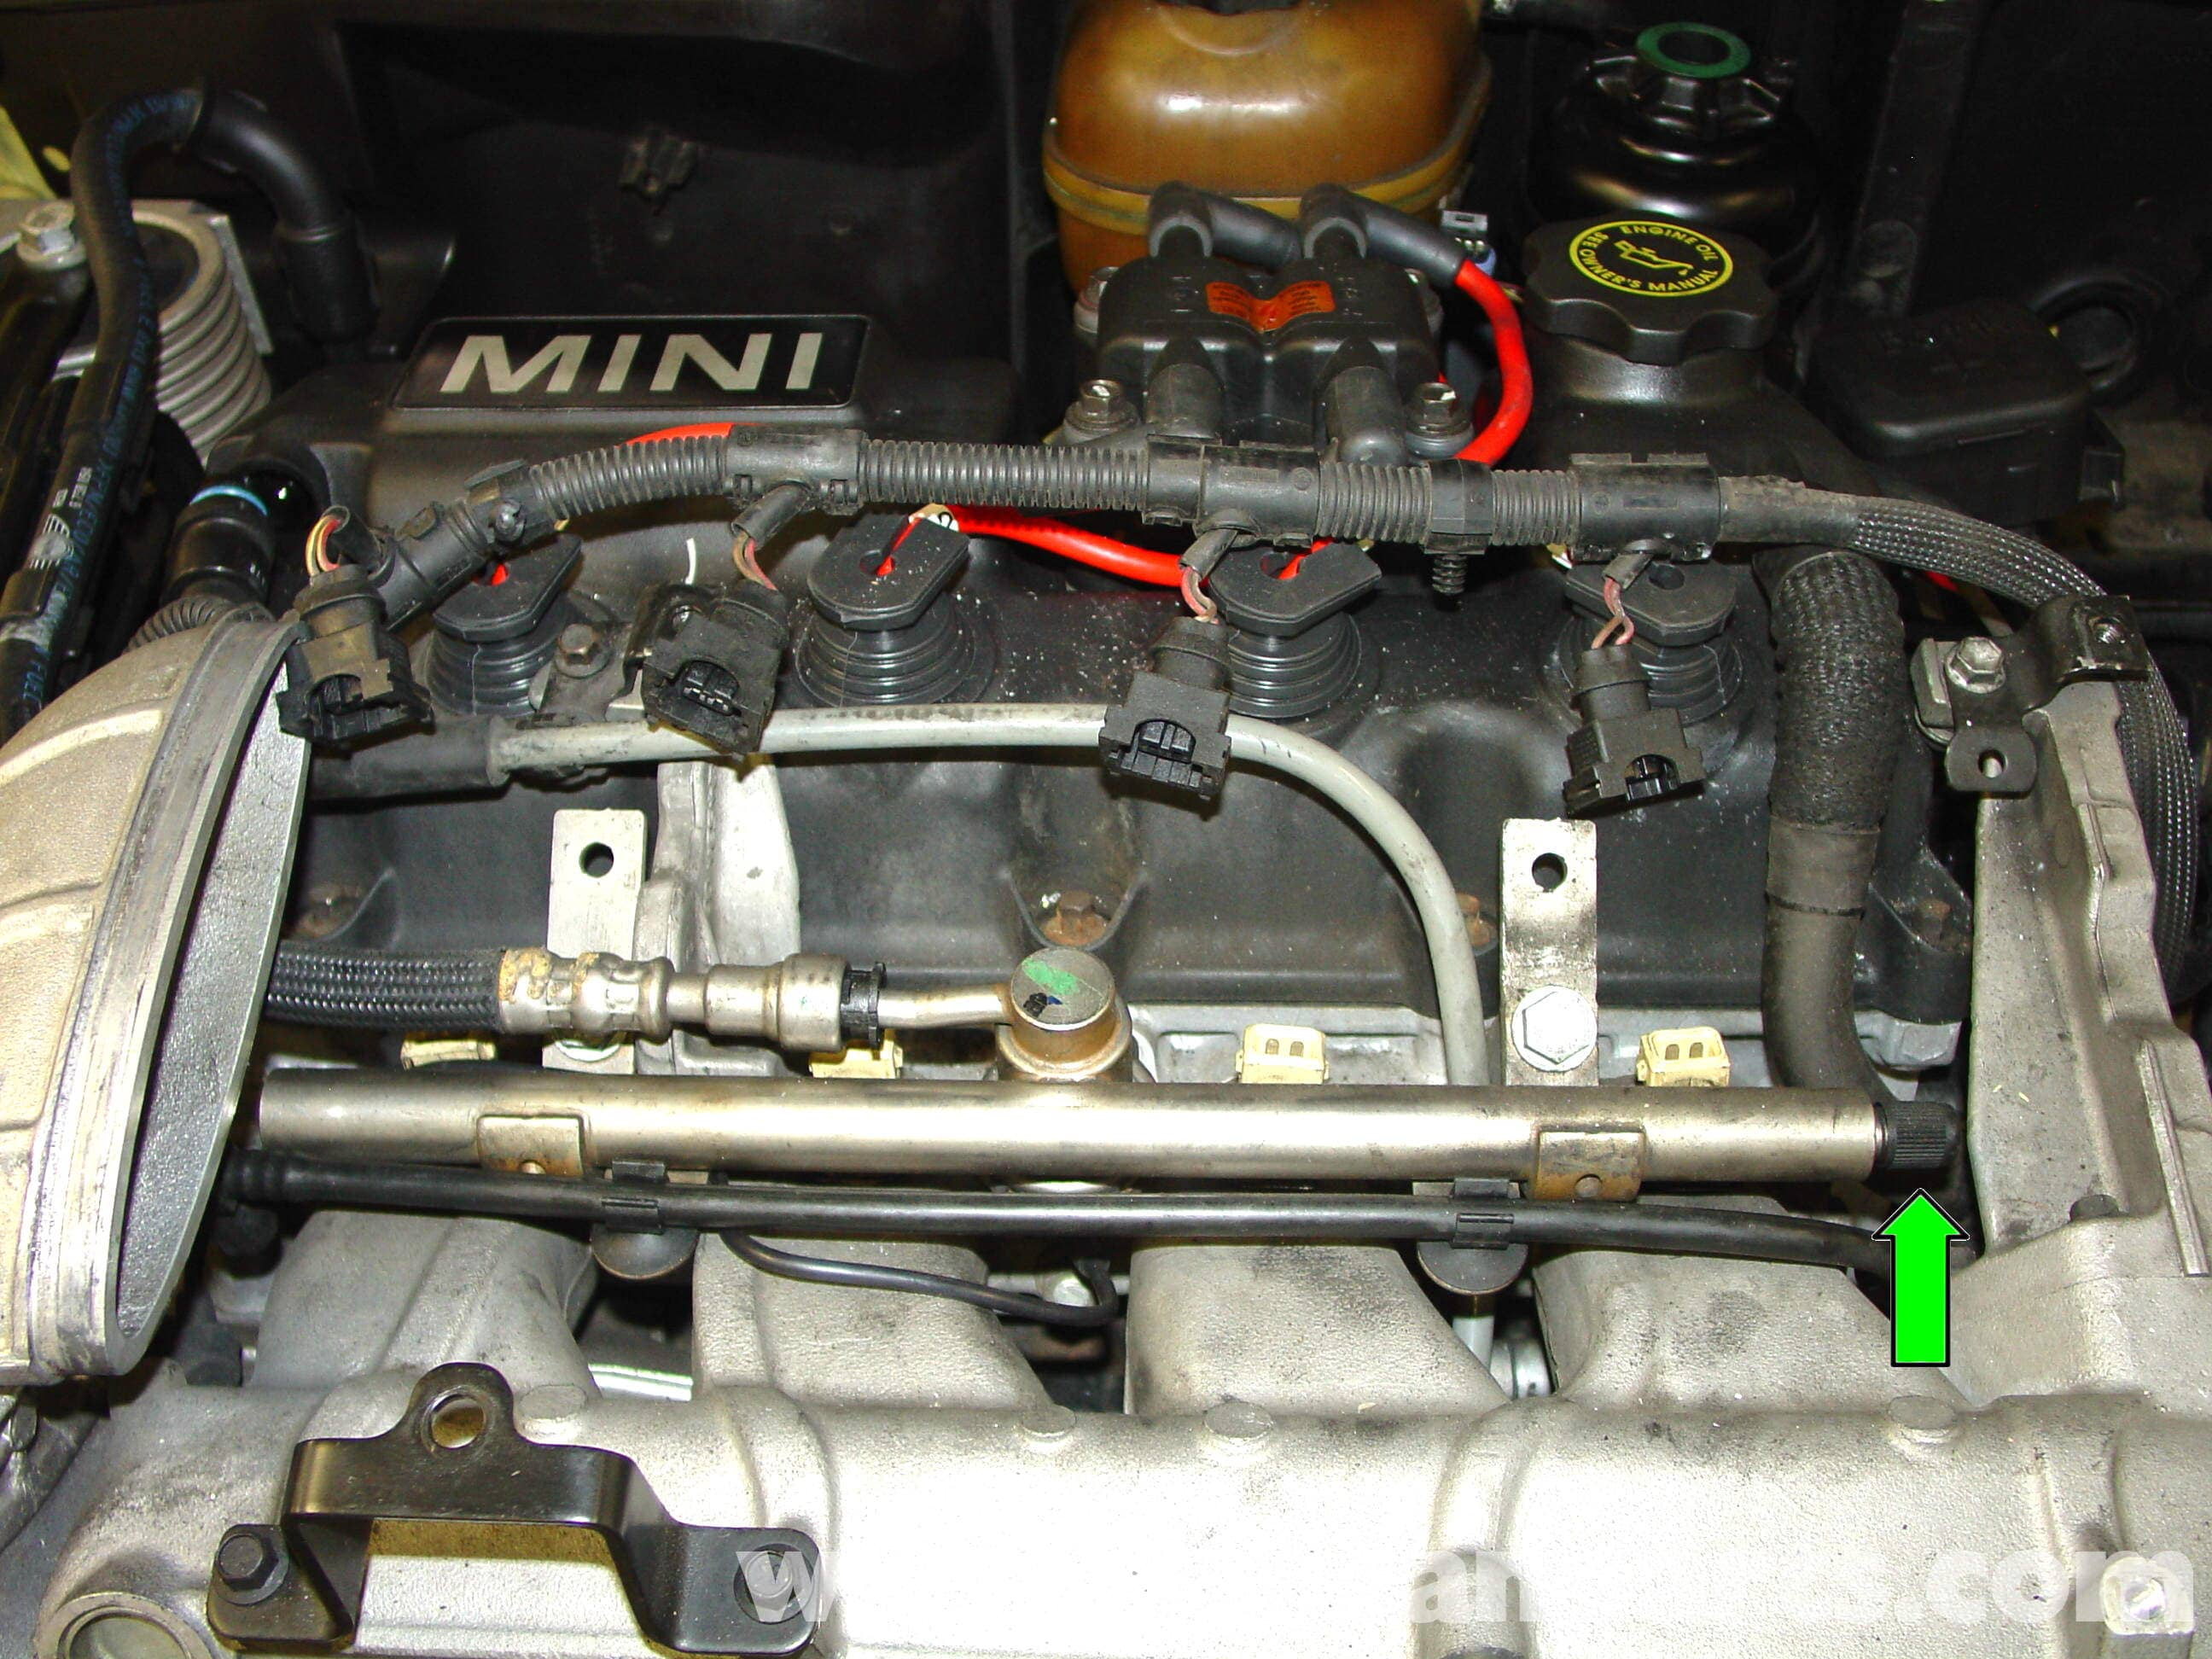 2008 volvo s40 engine diagram best wiring library 2005 Volvo S60 Engine Diagram volvo fuel pressure diagram custom wiring diagram \\u2022 2008 volvo s40 engine diagram 1992 volvo